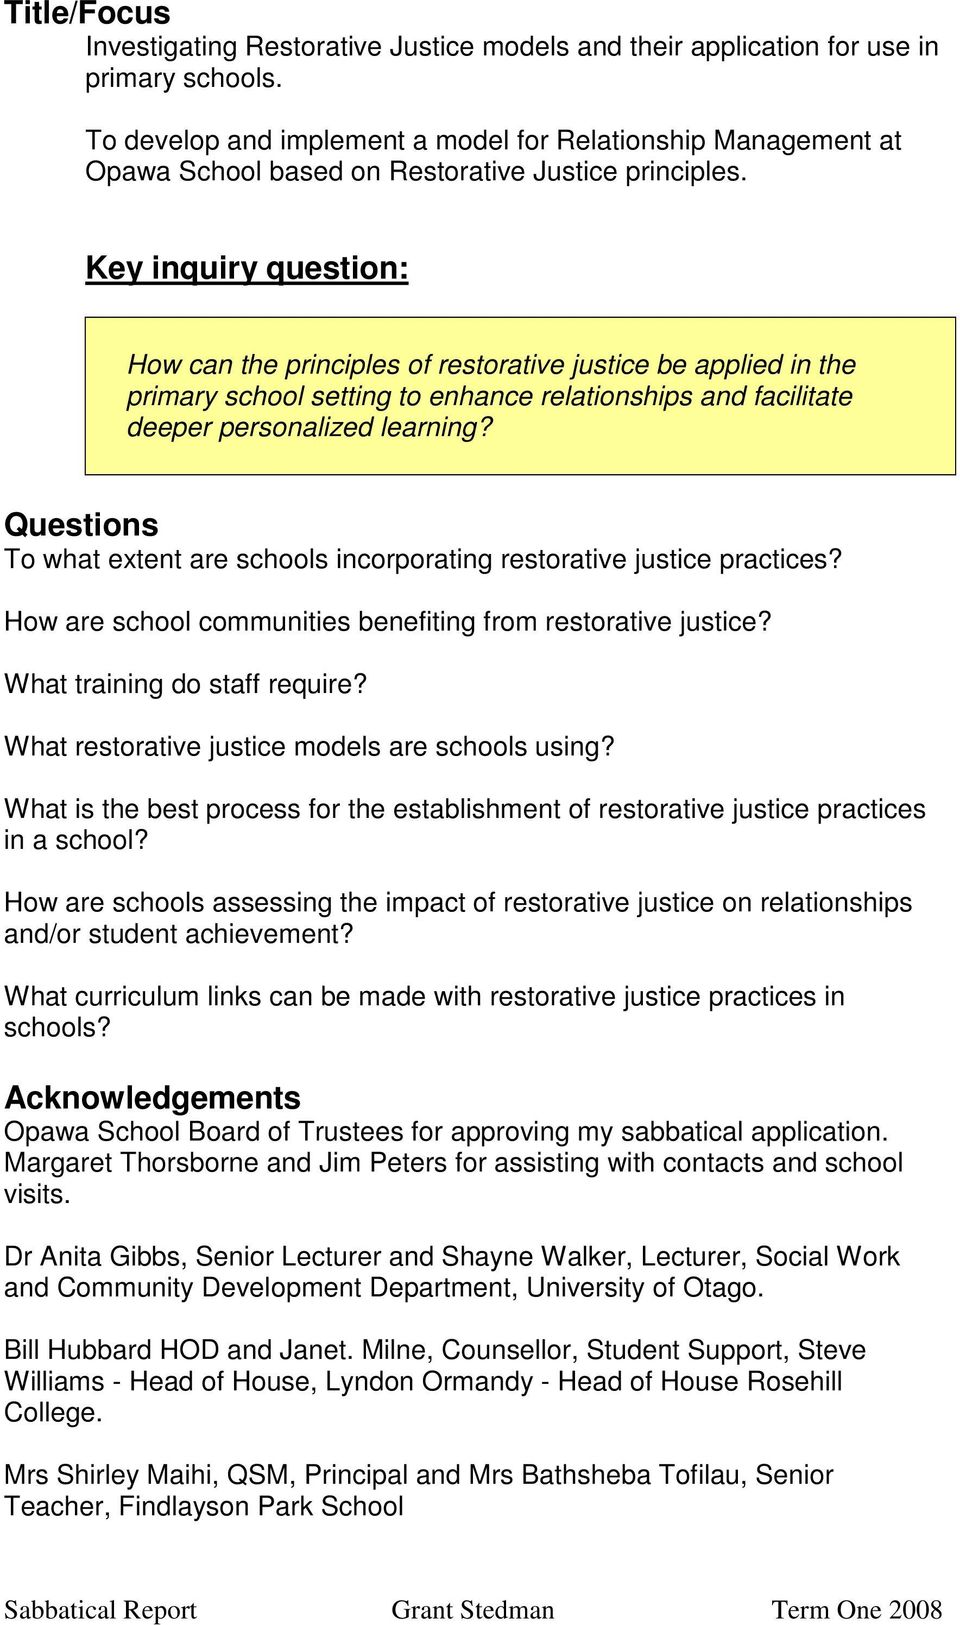 Key inquiry question: How can the principles of restorative justice be applied in the primary school setting to enhance relationships and facilitate deeper personalized learning?